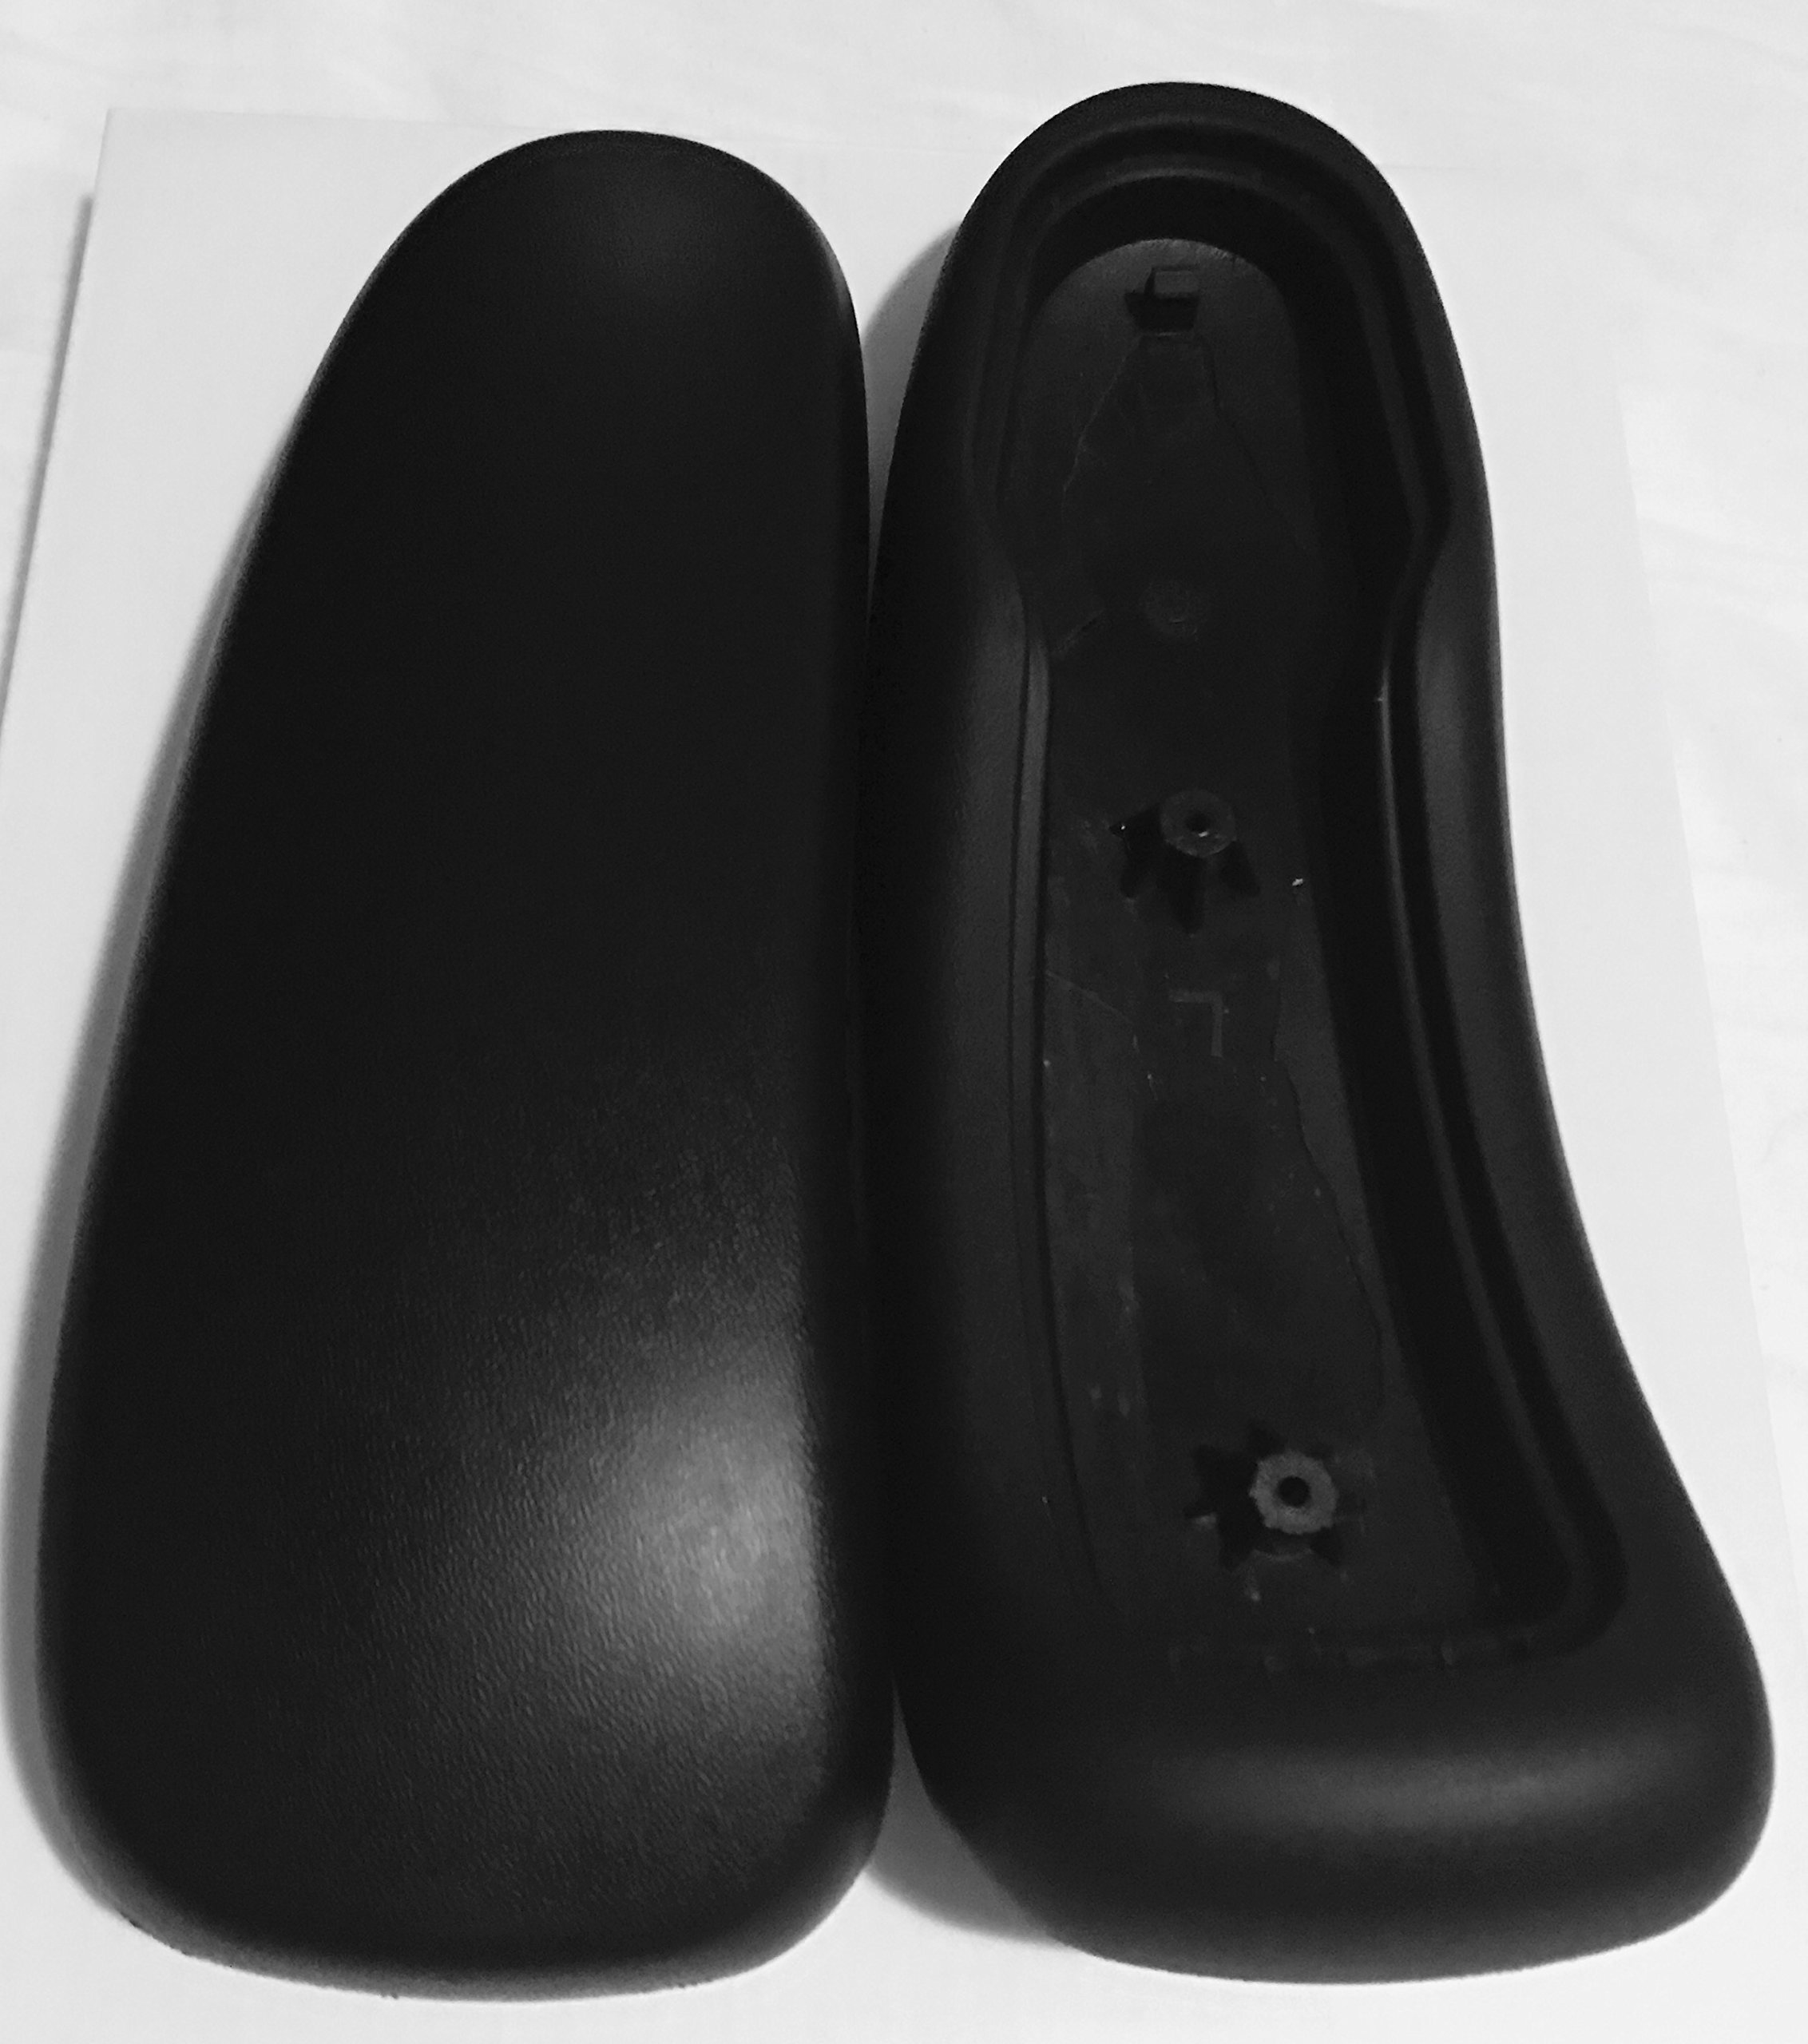 Classic Vinyl Arm Pads Pair For Herman Miller Aeron Chair